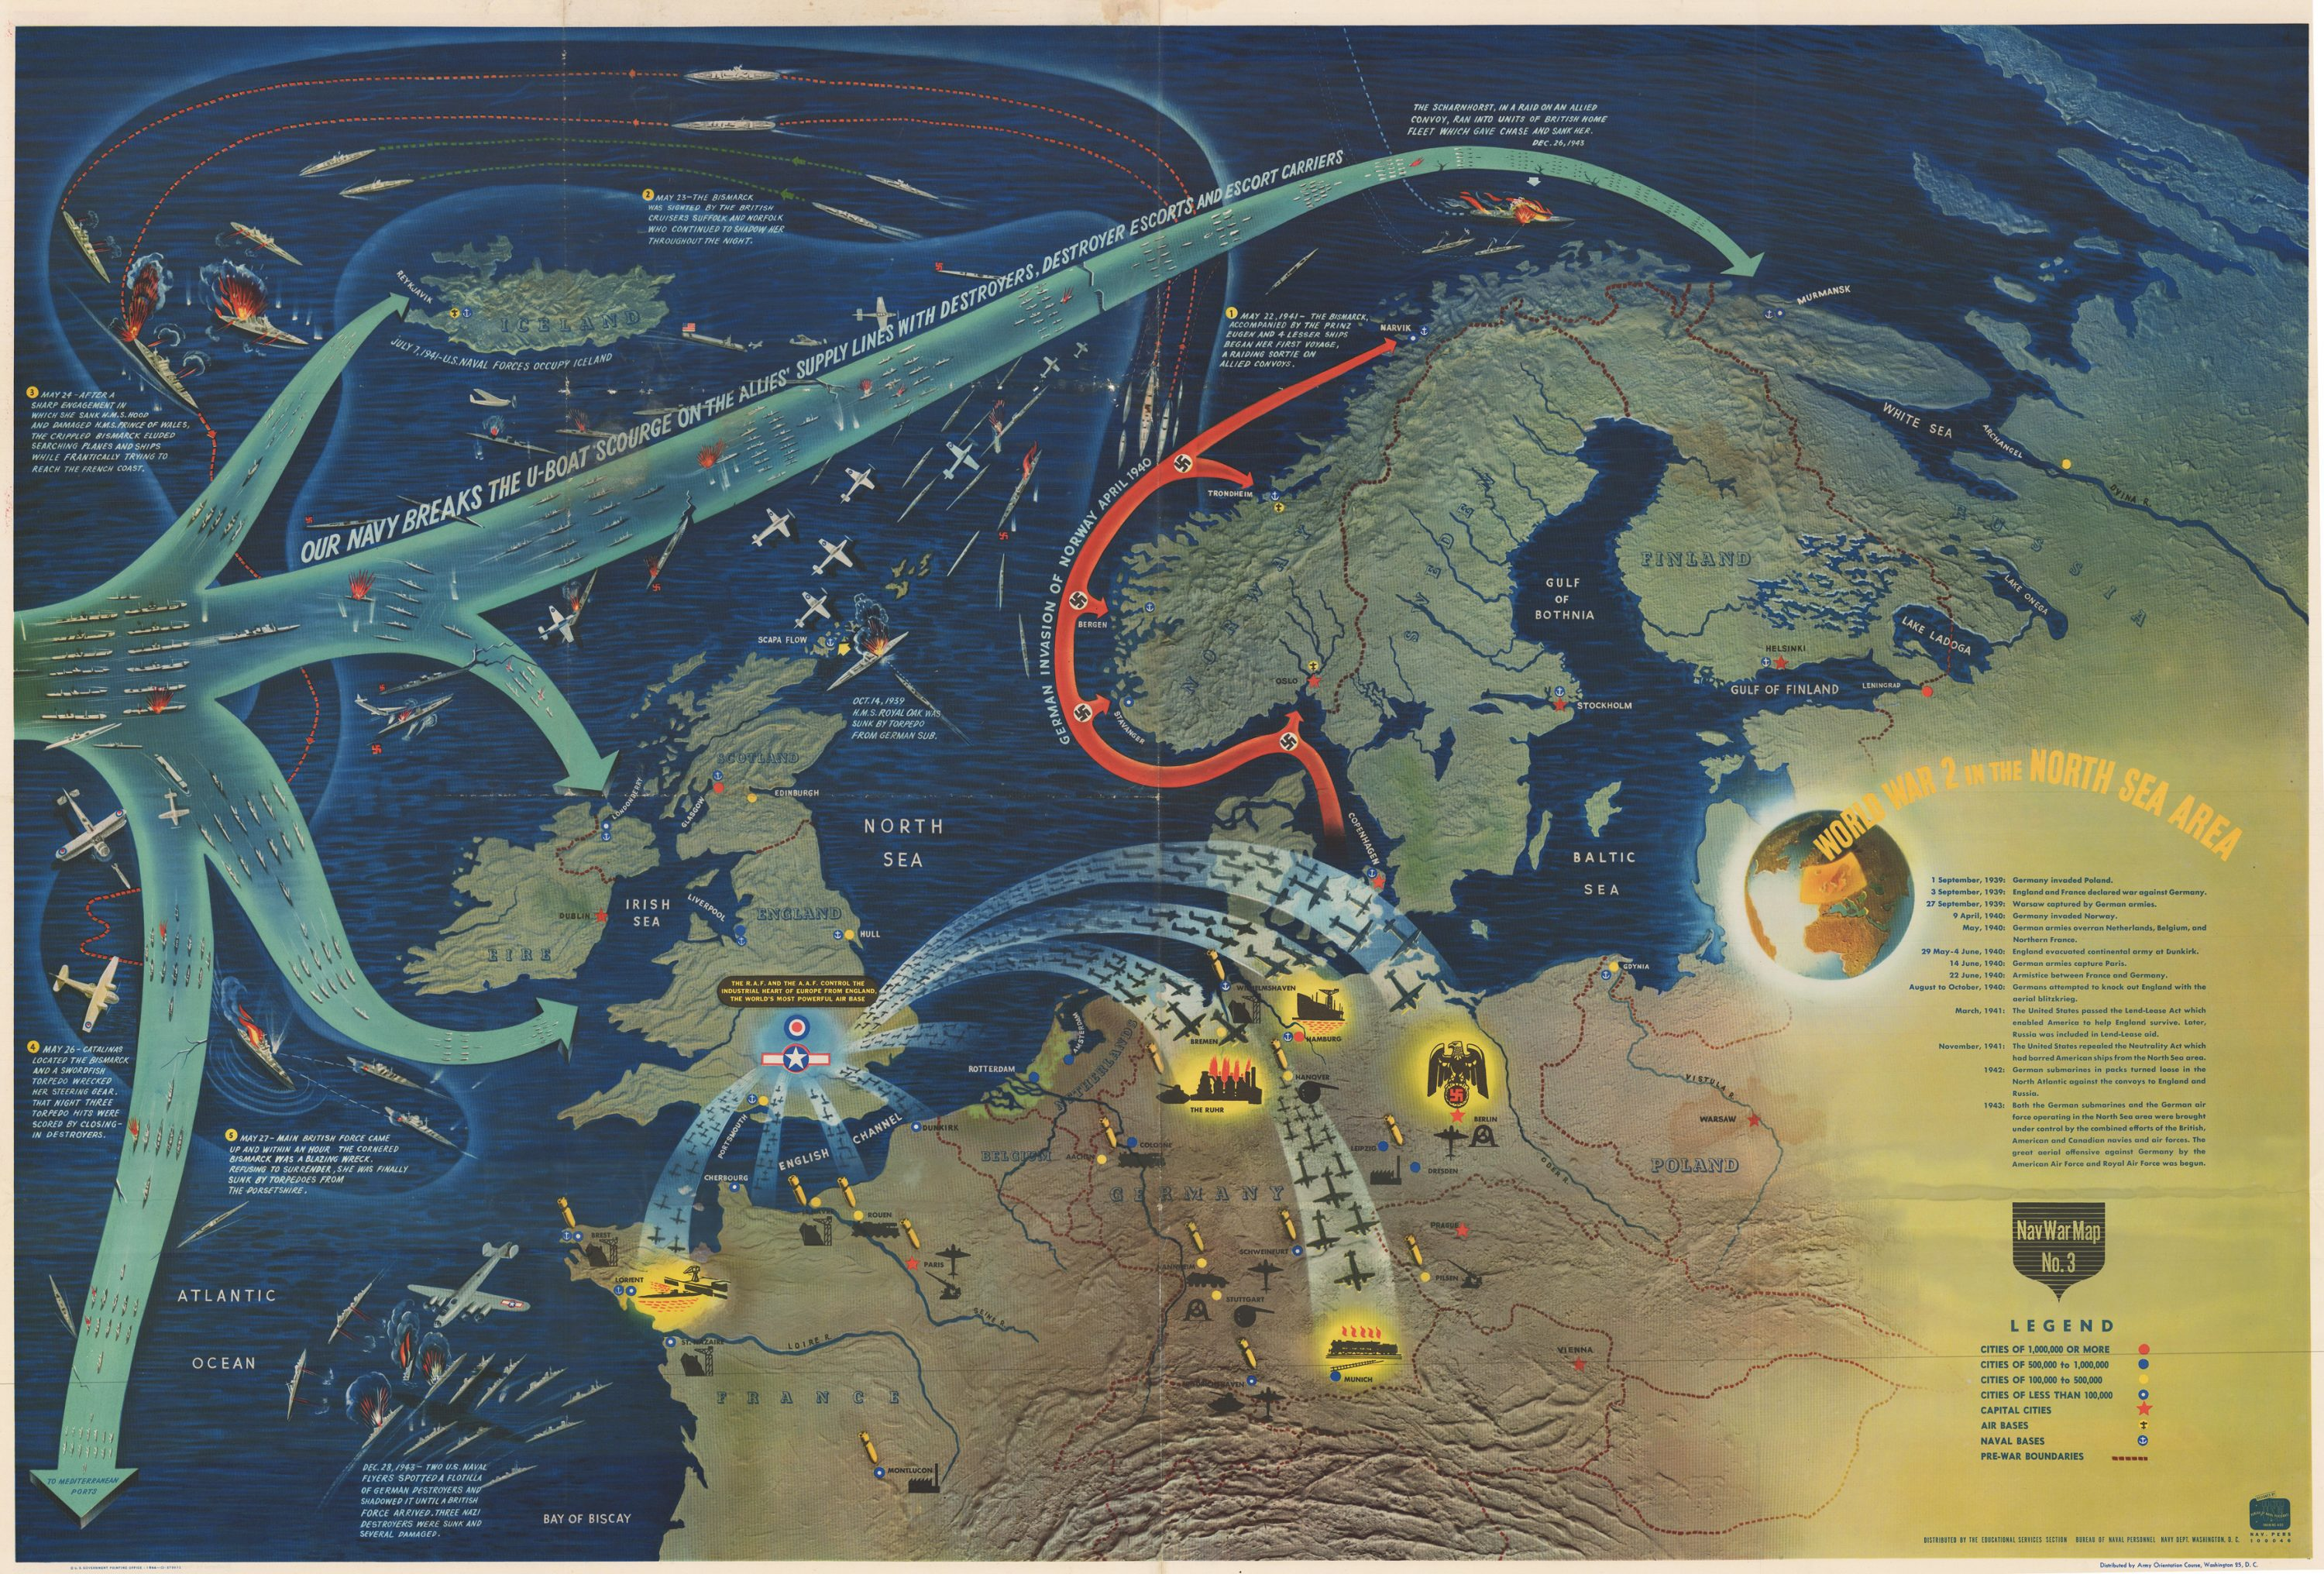 Striking Nav War Map Issued By The U S Navy Department Near The Close Of World War Ii